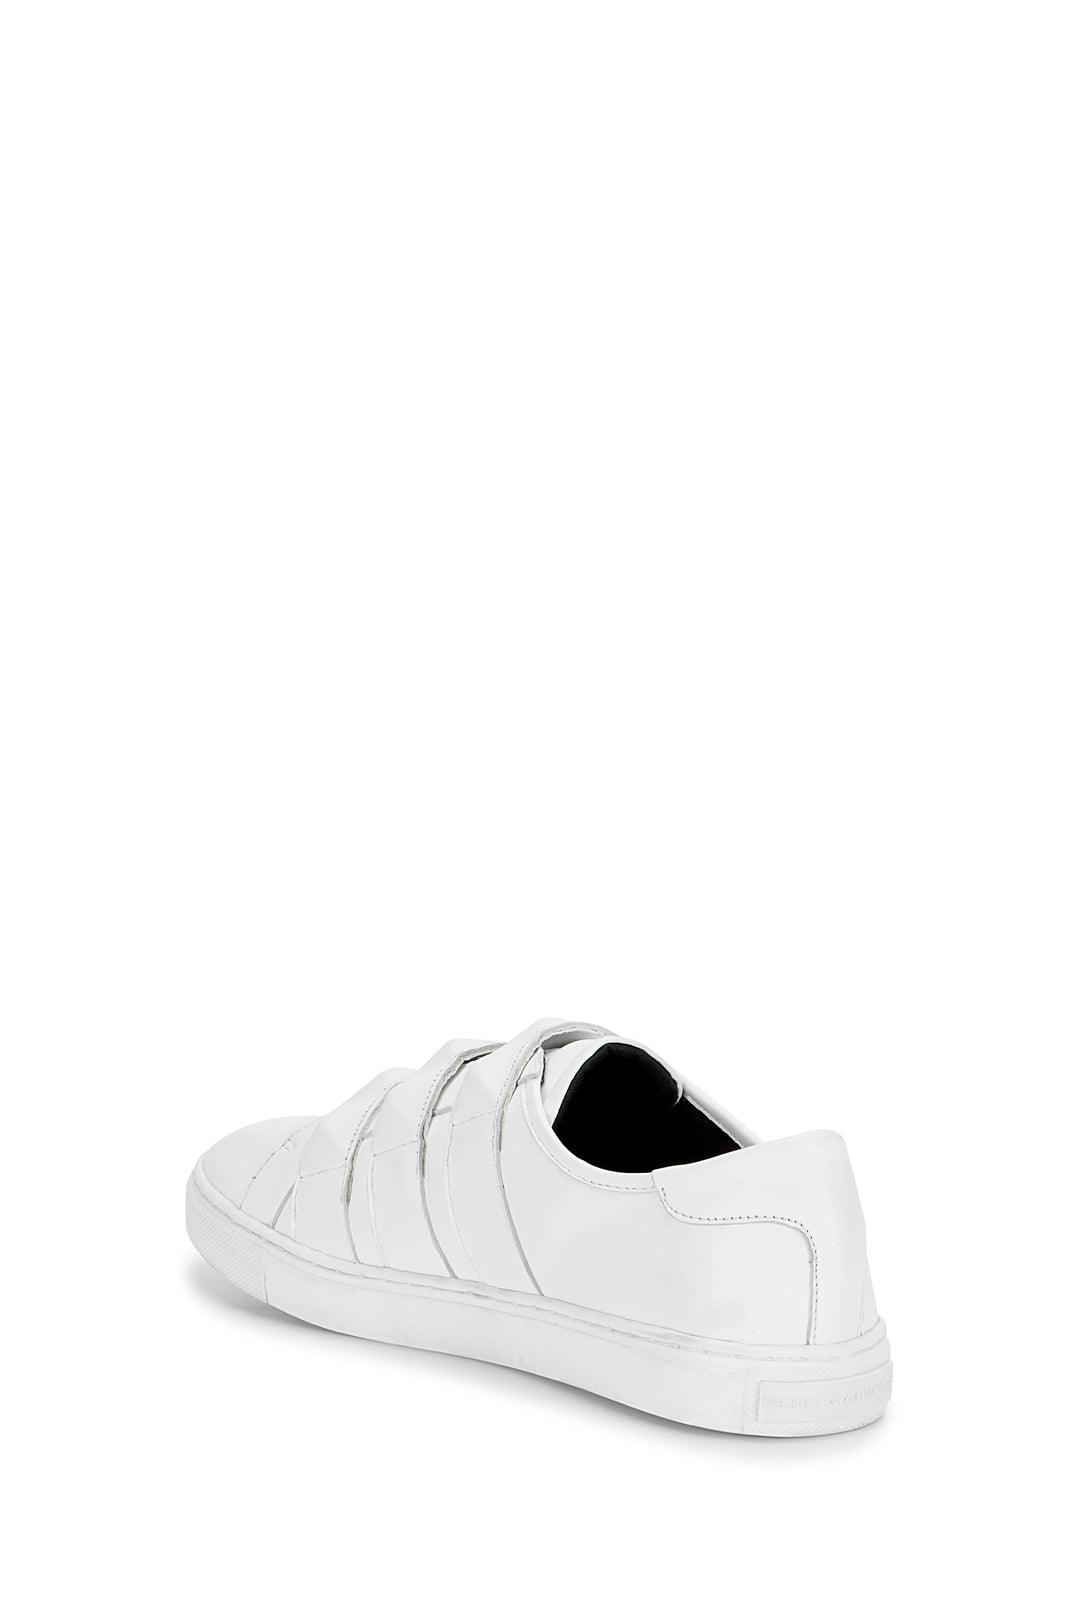 becky sneaker rebecca minkoff Leather Treatment Products becky sneaker